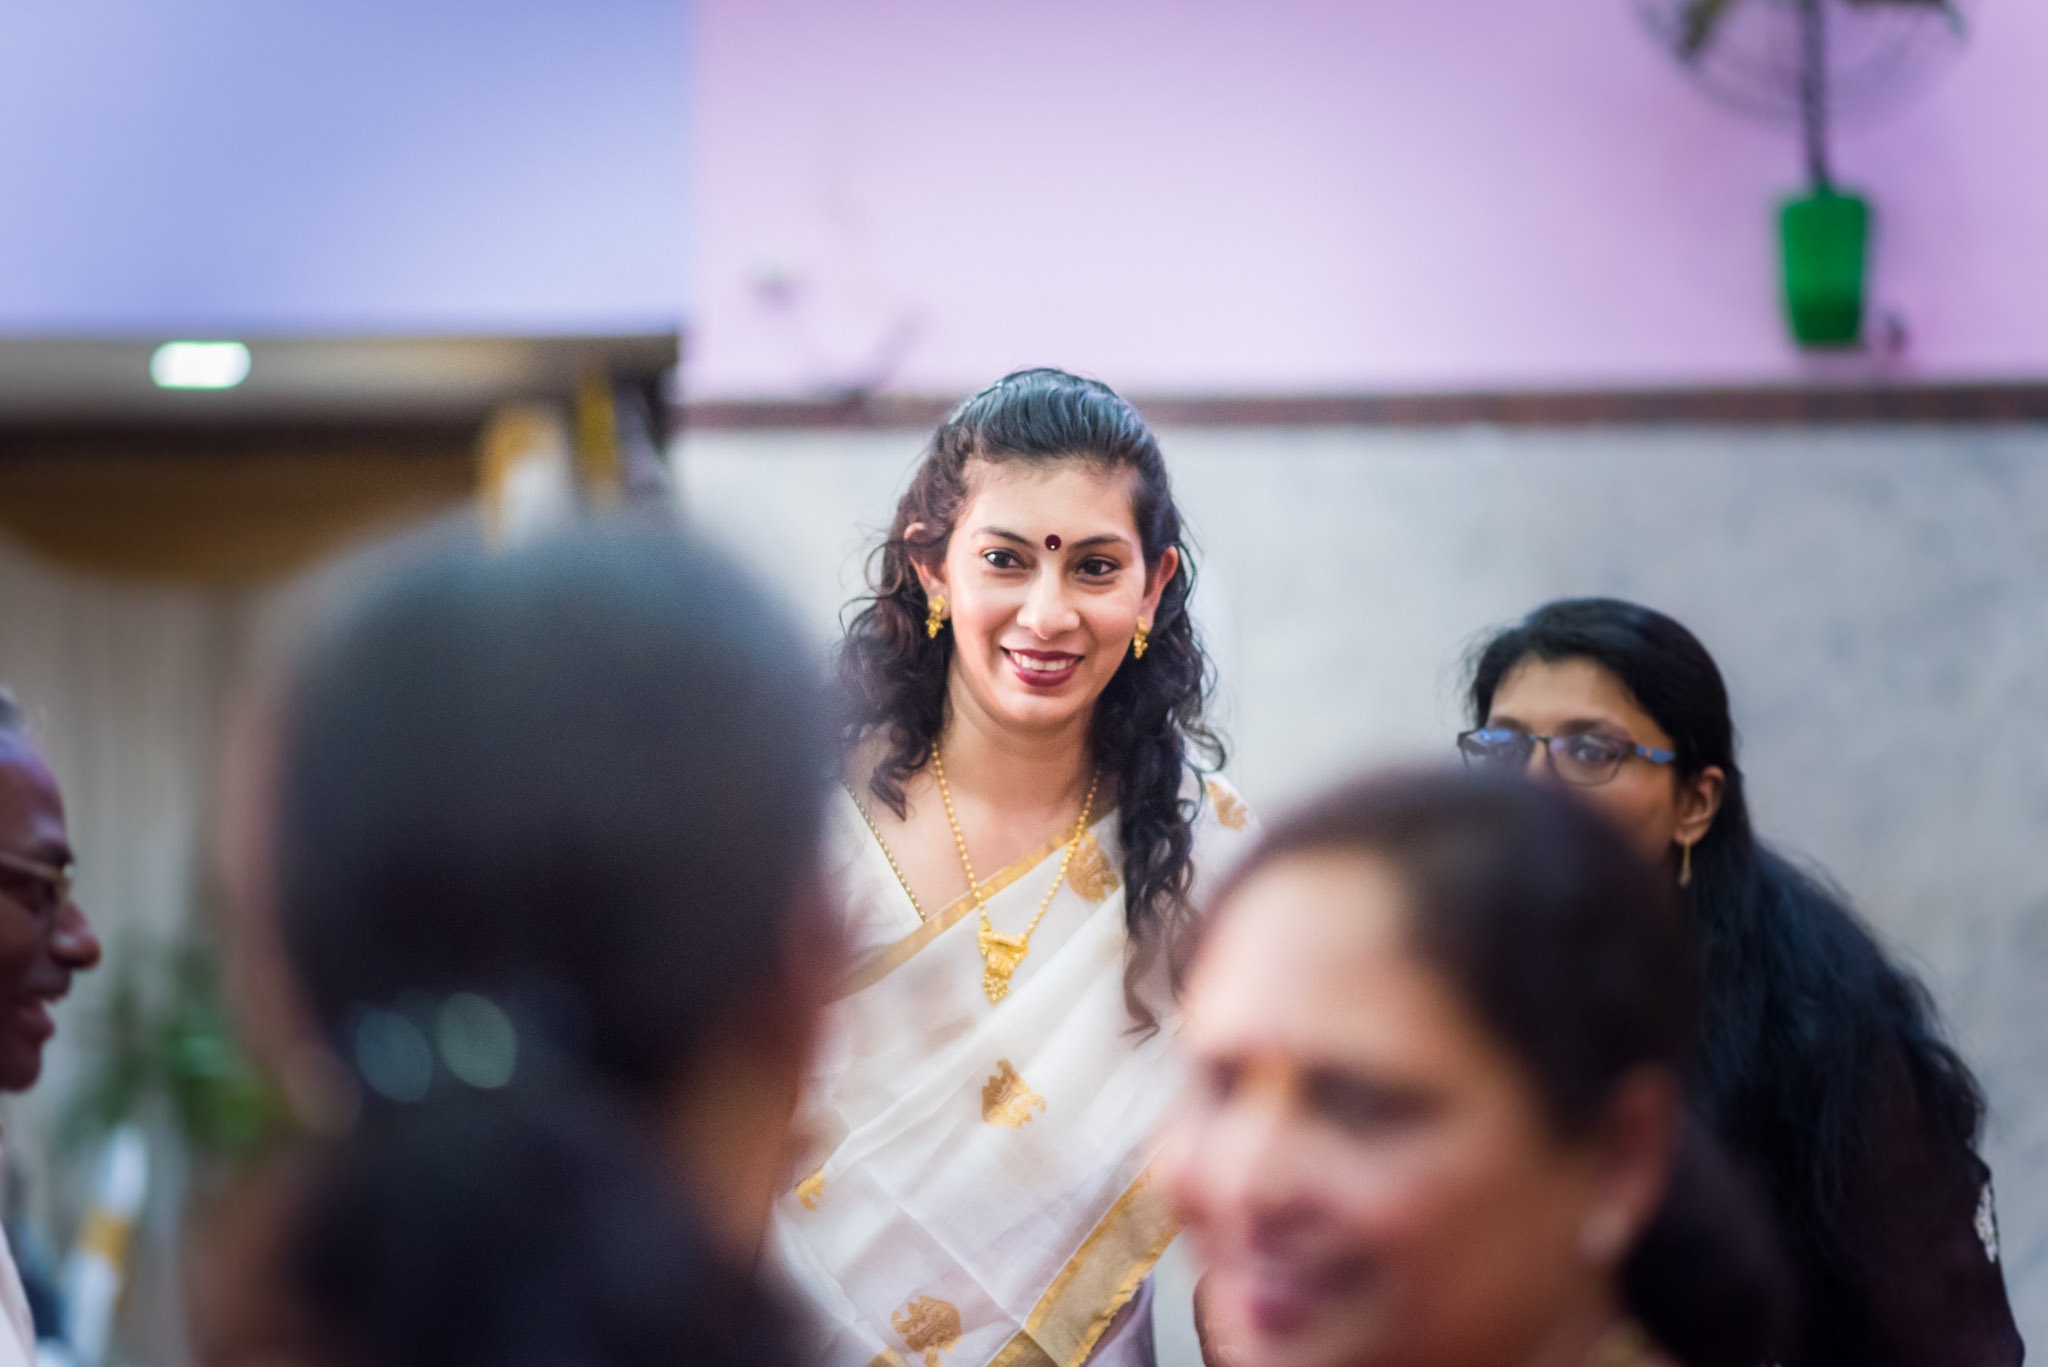 WhatKnot-Candid-Wedding-Photography-Mumbai-Bangalore-243